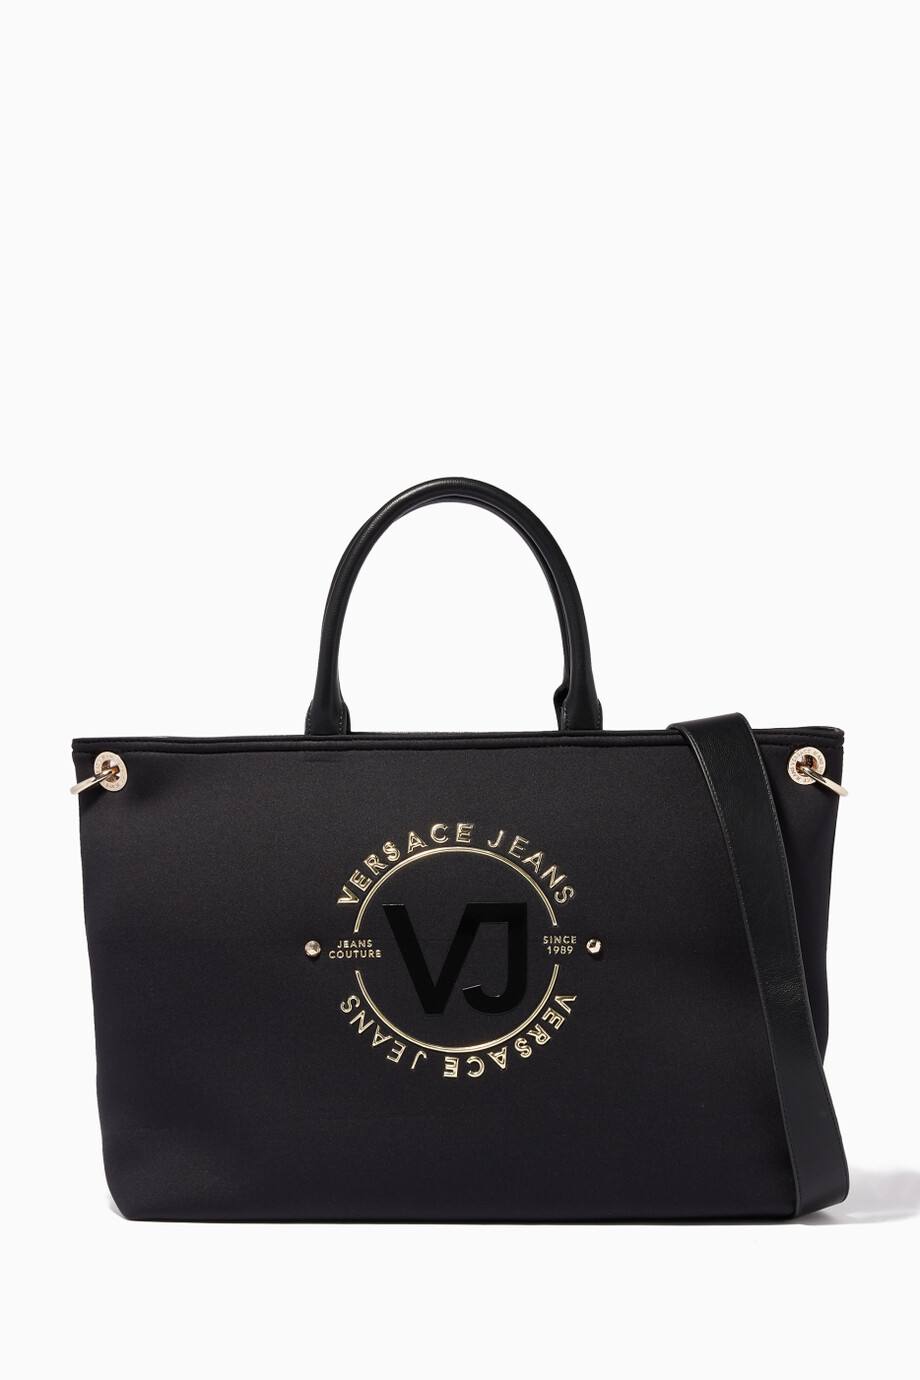 88709245aa67 Shop Versace Jeans Black Black Embossed-Logo Print Bag for ...